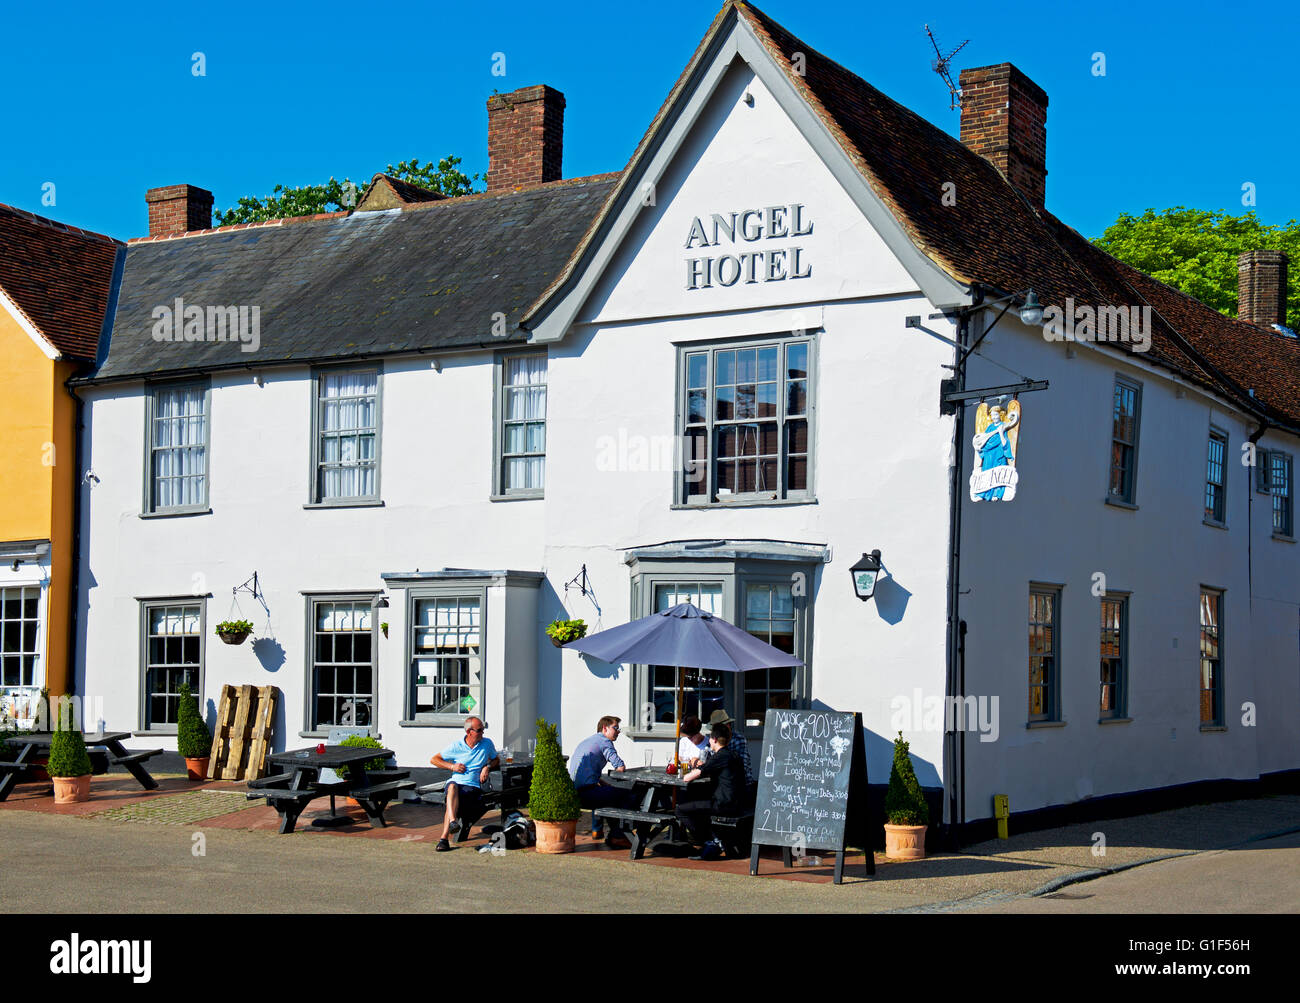 The Angel Hotel in the village of Lavenham, Suffolk, England UK Stock Photo